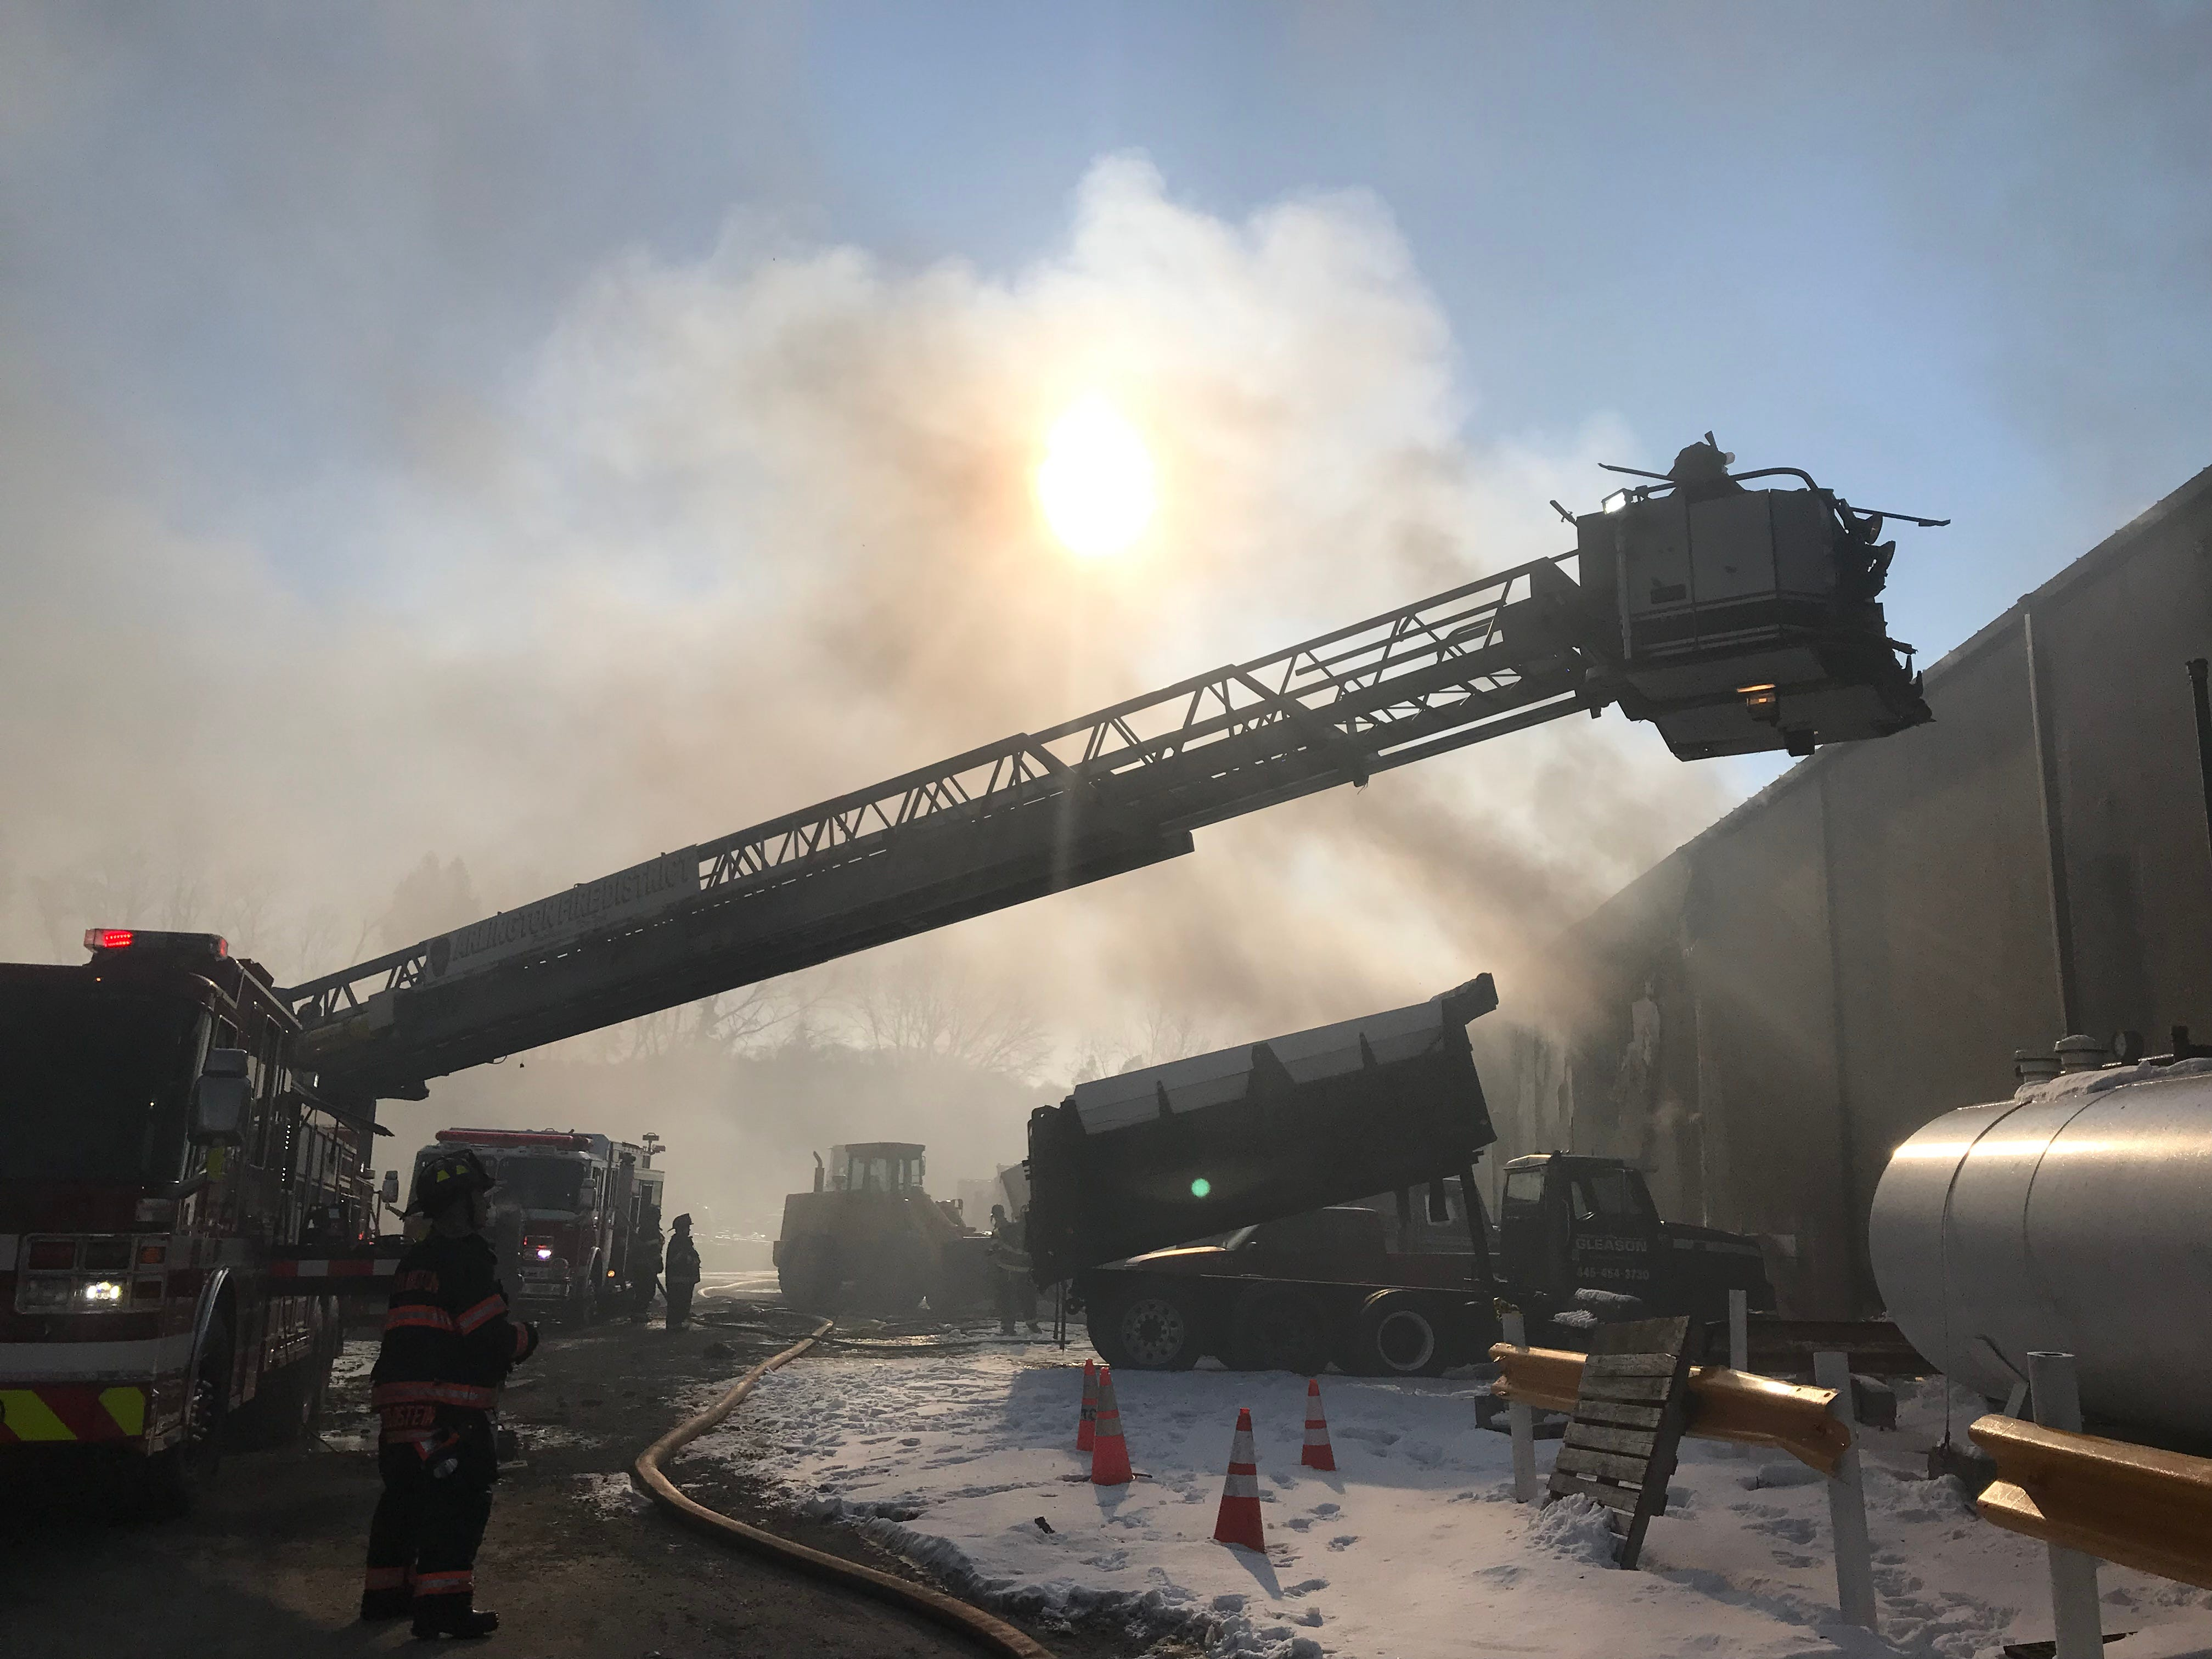 Firefighters work to put out a fire at the Thomas Gleason excavation company in Poughkeepsie Thursday.